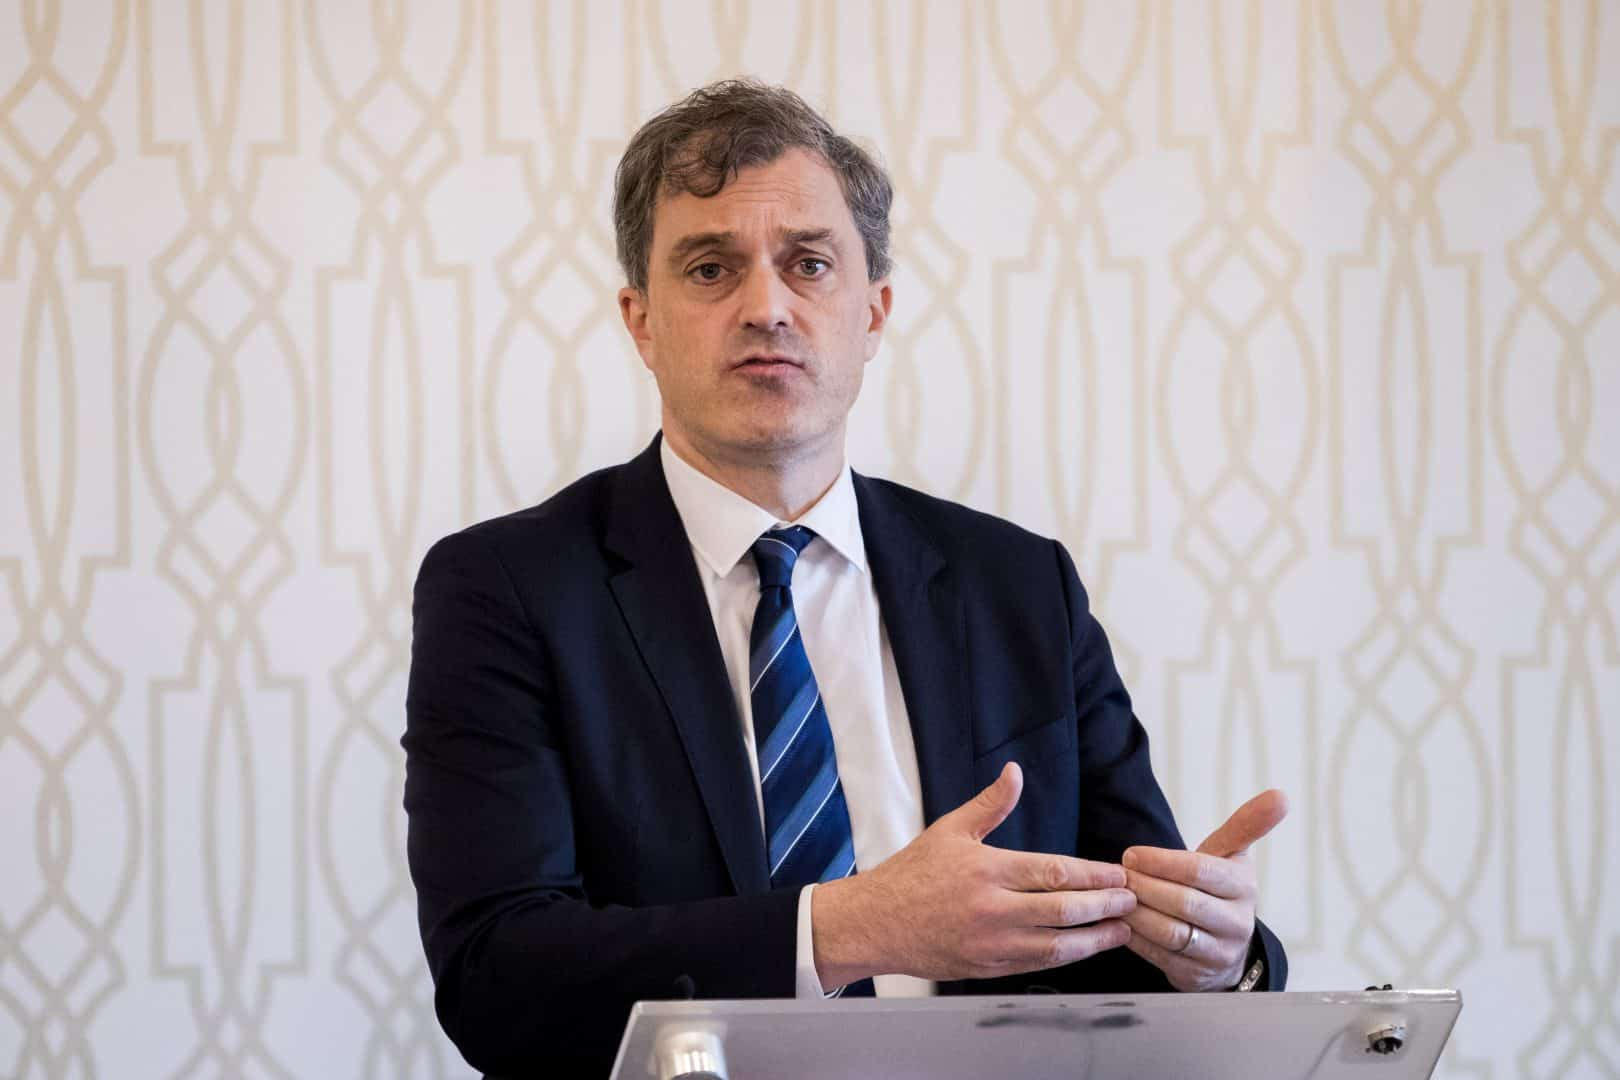 Northern Ireland Secretary Julian Smith has said finding a solution will be among his top priorities during talks he has called with the local political parties (Liam McBurney/PA)